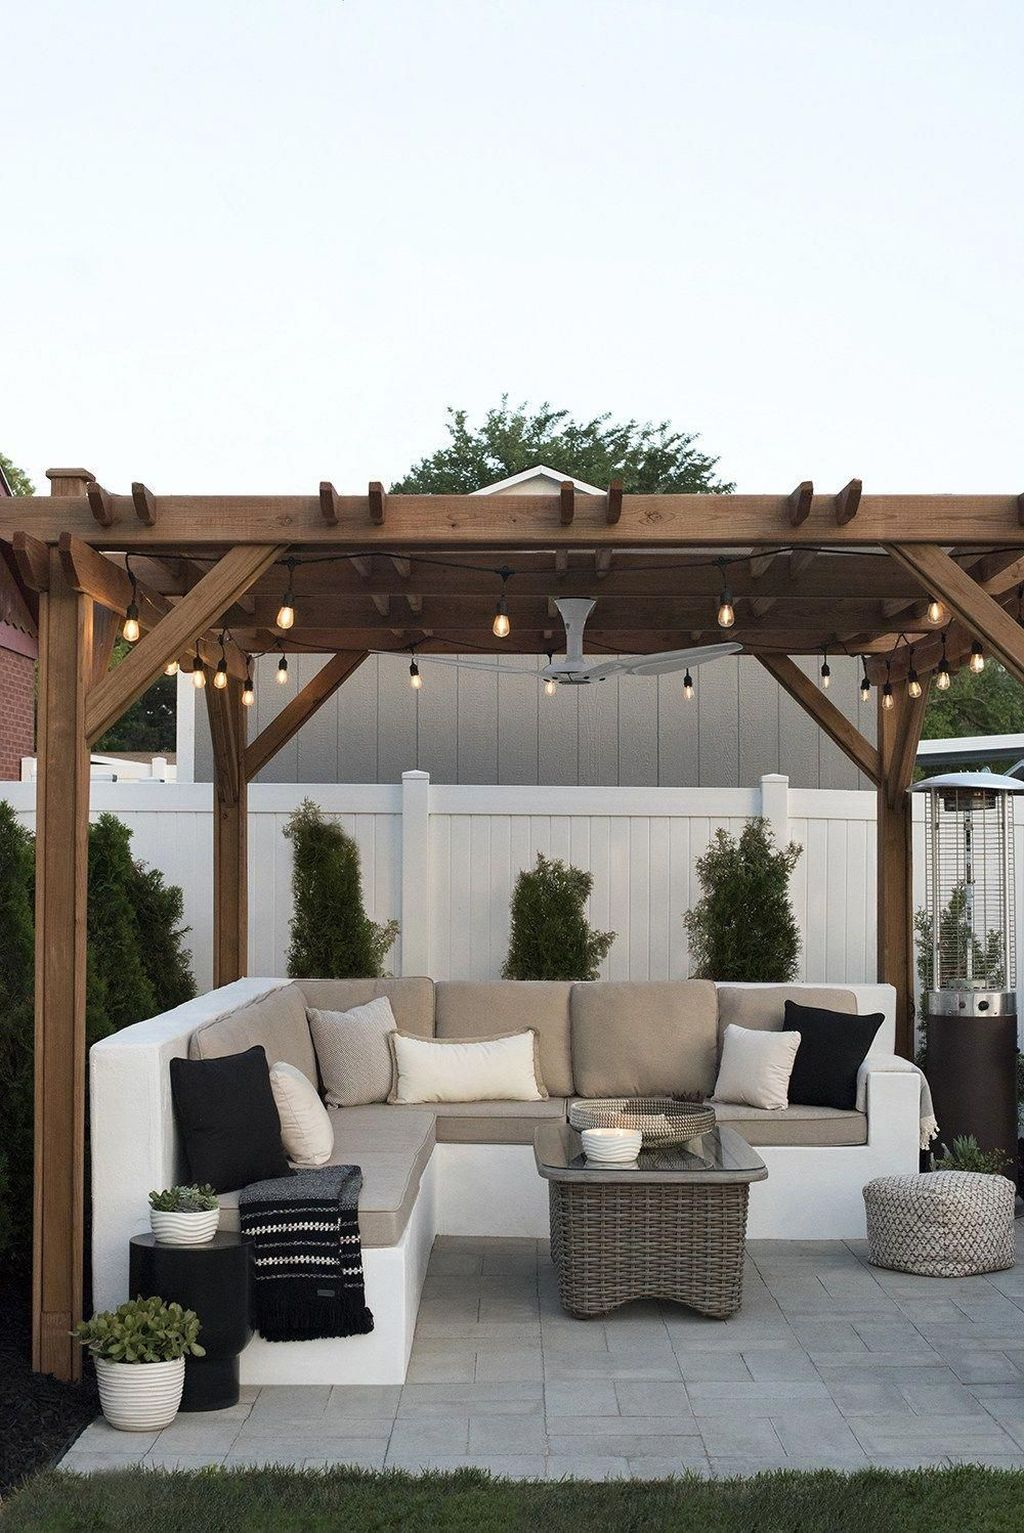 Admirable Cozy Patio Design Ideas To Relaxing On A Sunny Day 35